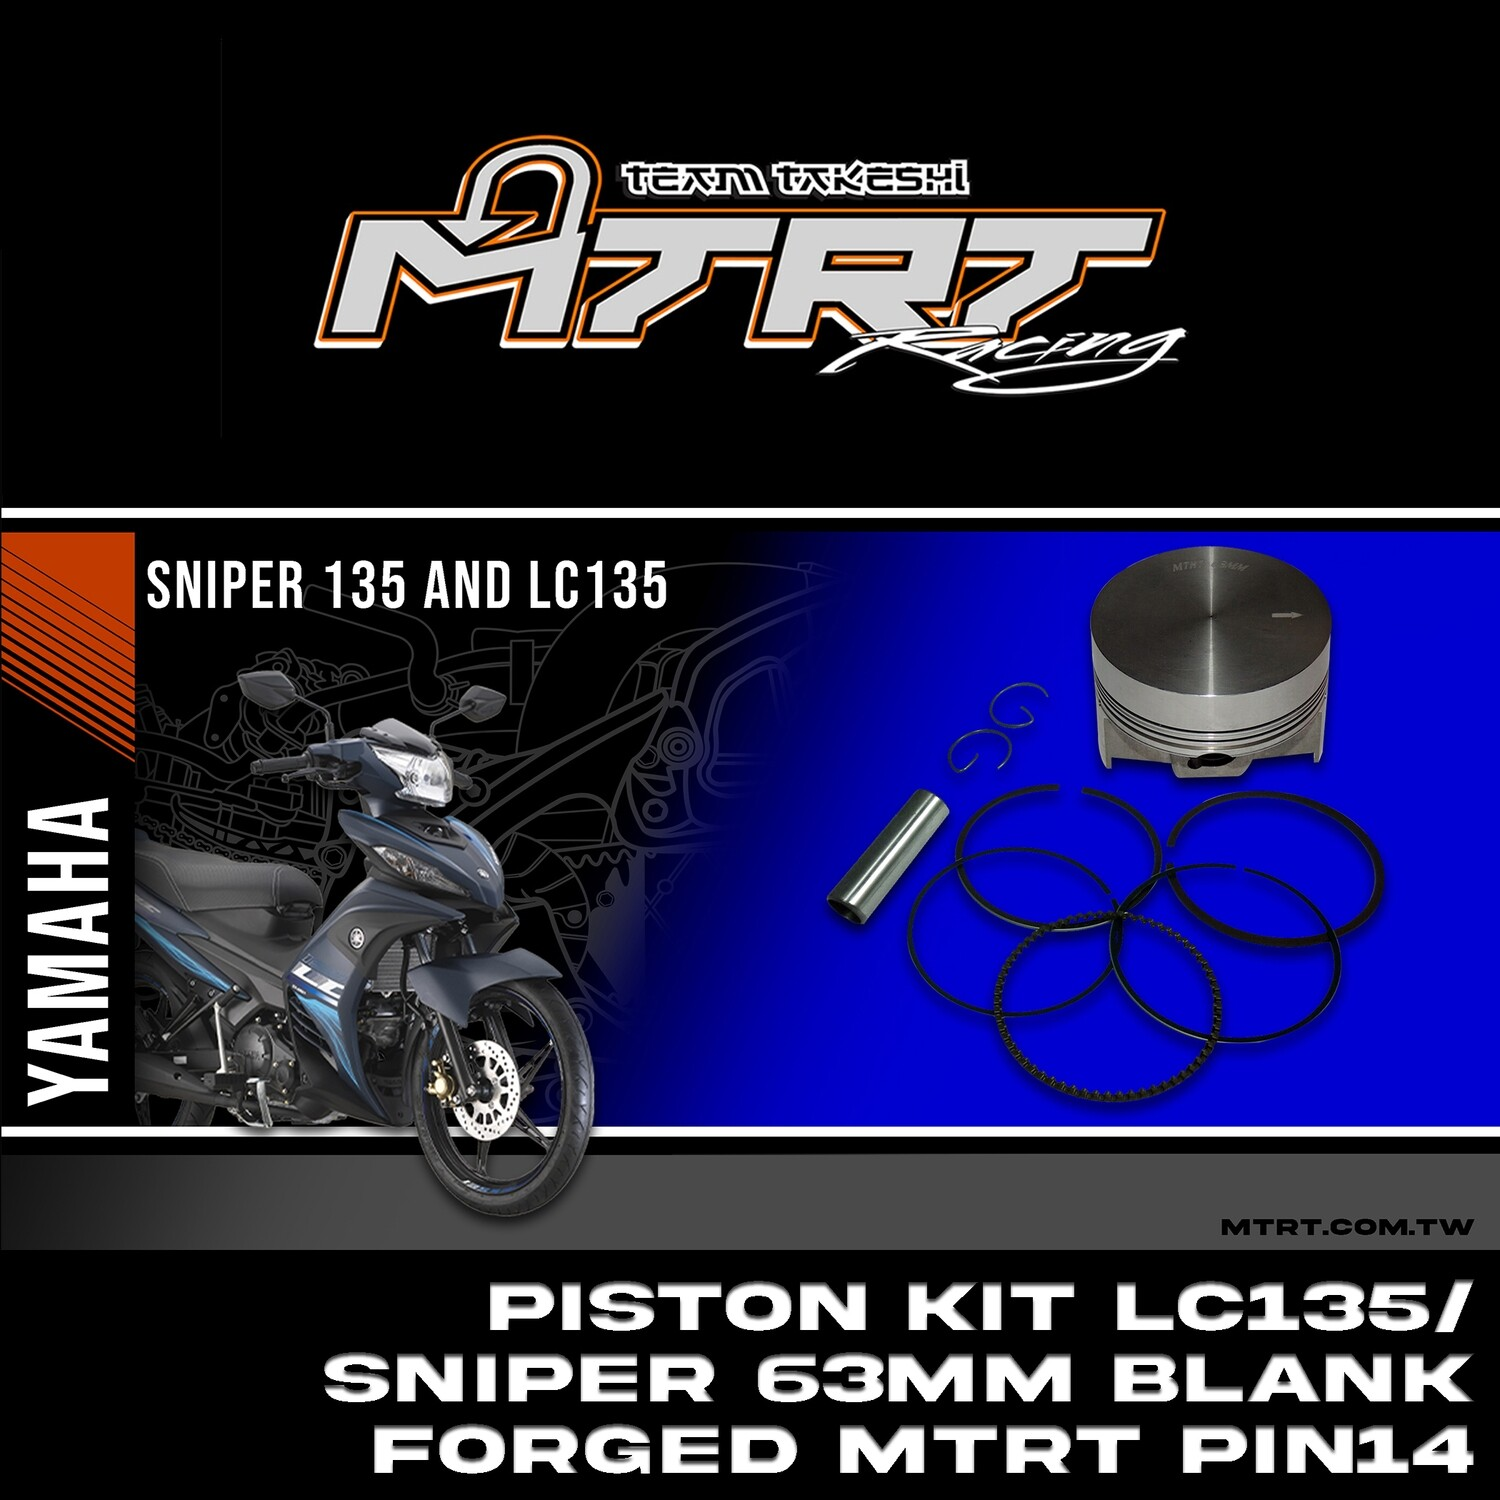 PISTON  KIT  LC135/SNIPER 63MM Blank Forged MTRT pin14